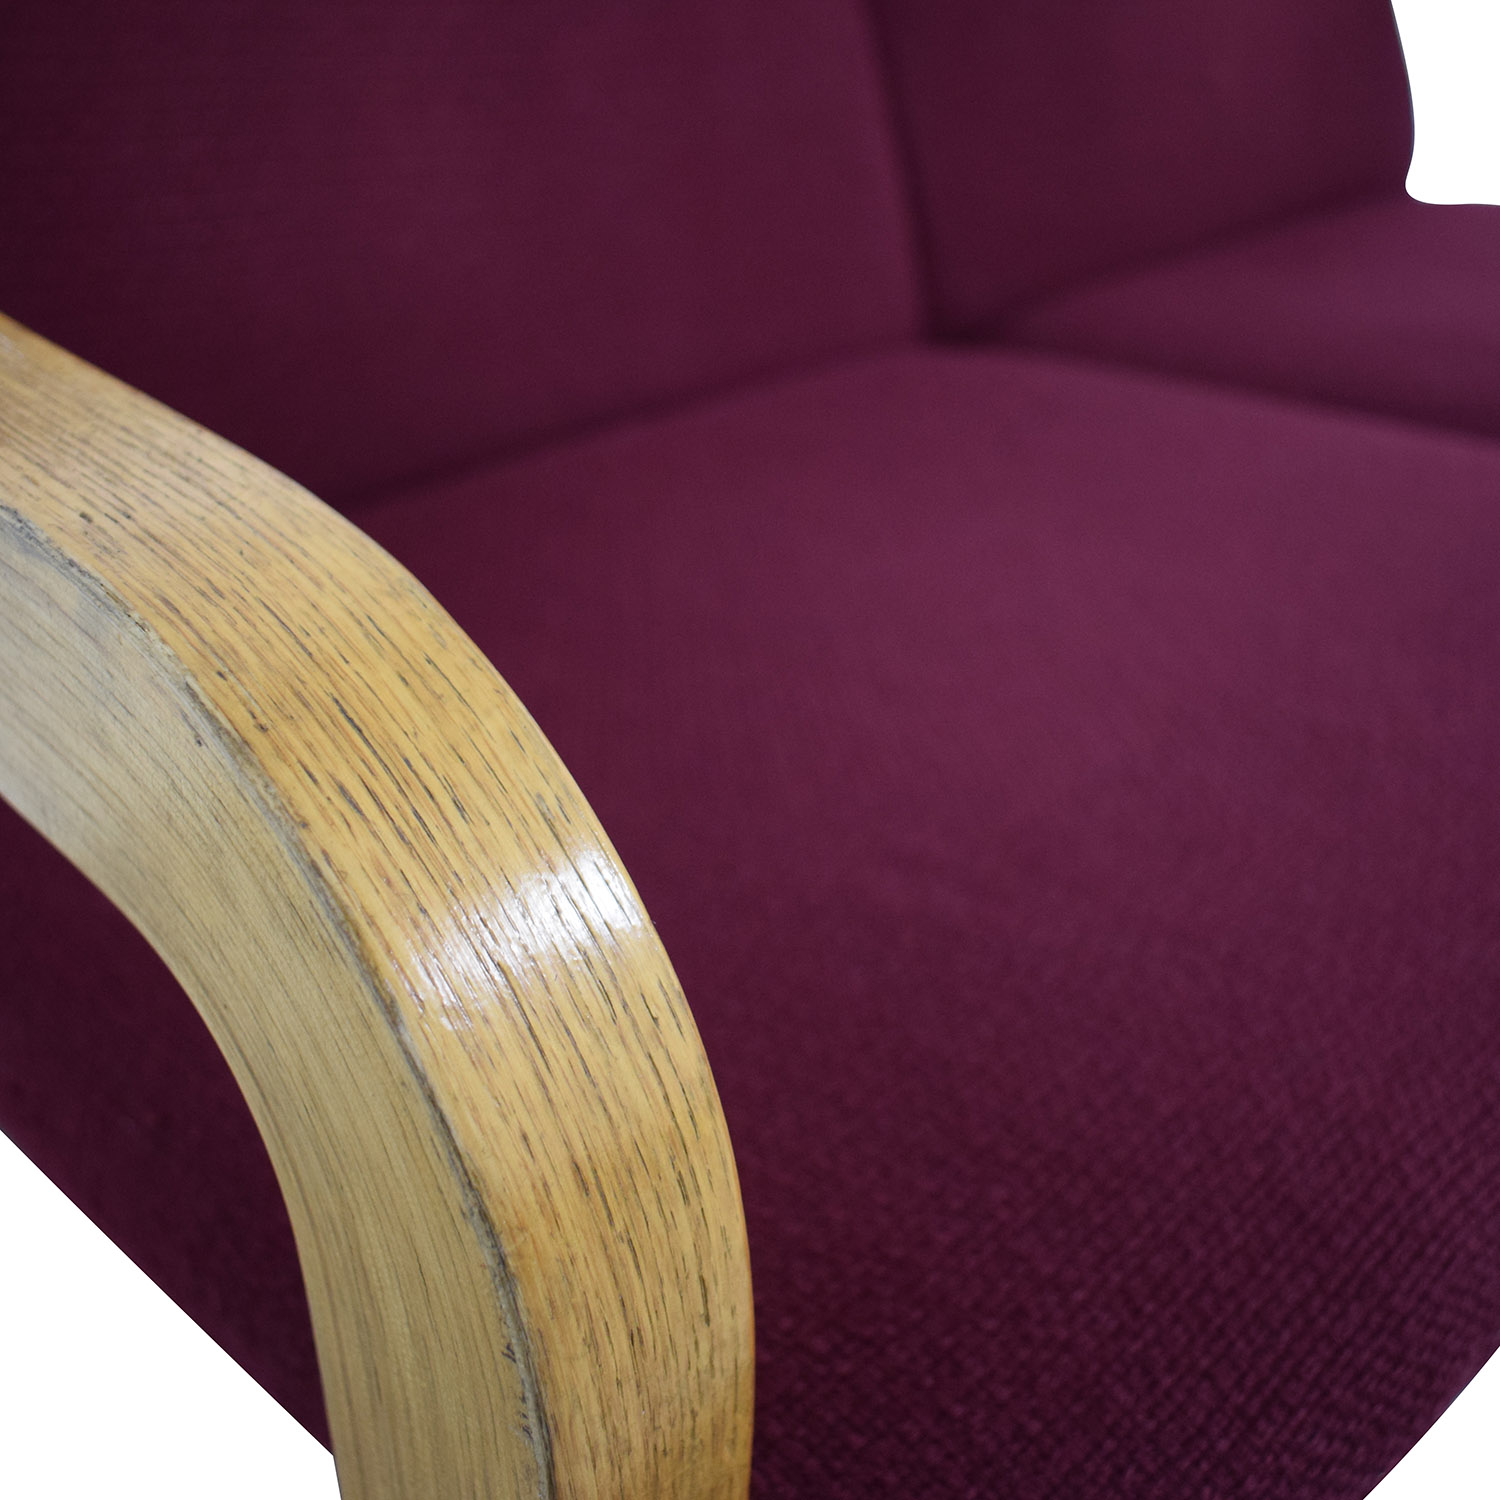 Thonet Thonet Bentwood Couch with Maroon Upholstery dimensions